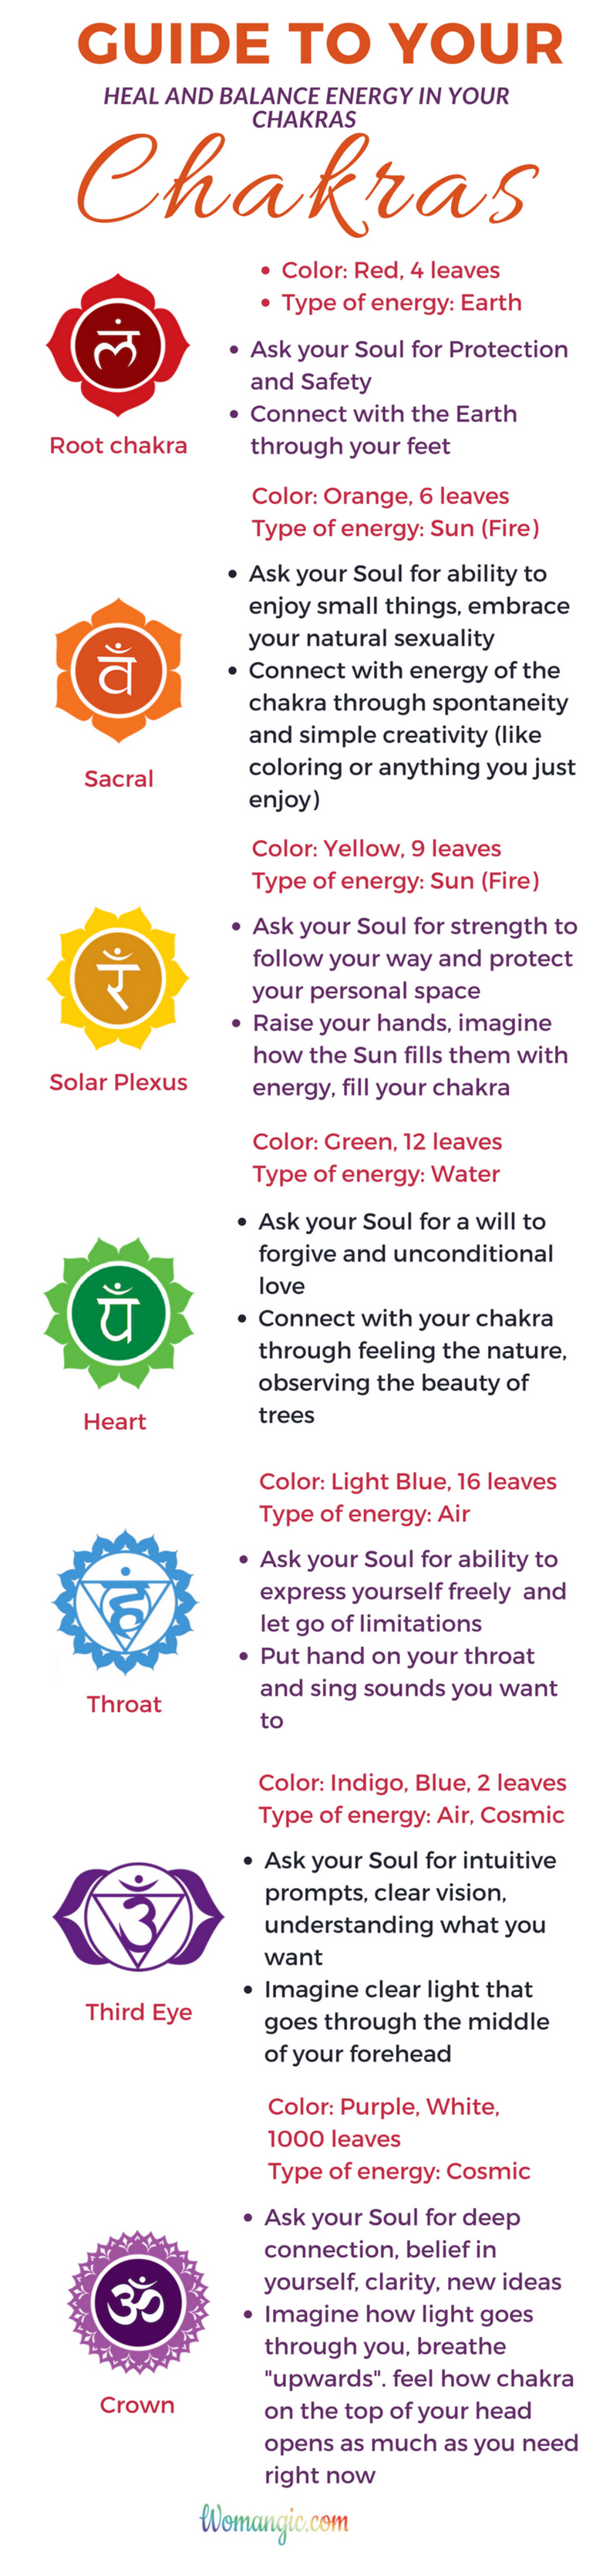 Chakra Chakra Balancing Root Sacral Solar Plexus Heart Throat Third Eye Crown Chakra Meaning Chakra Reiki Symbols Chakra Affirmations Chakra Cleanse